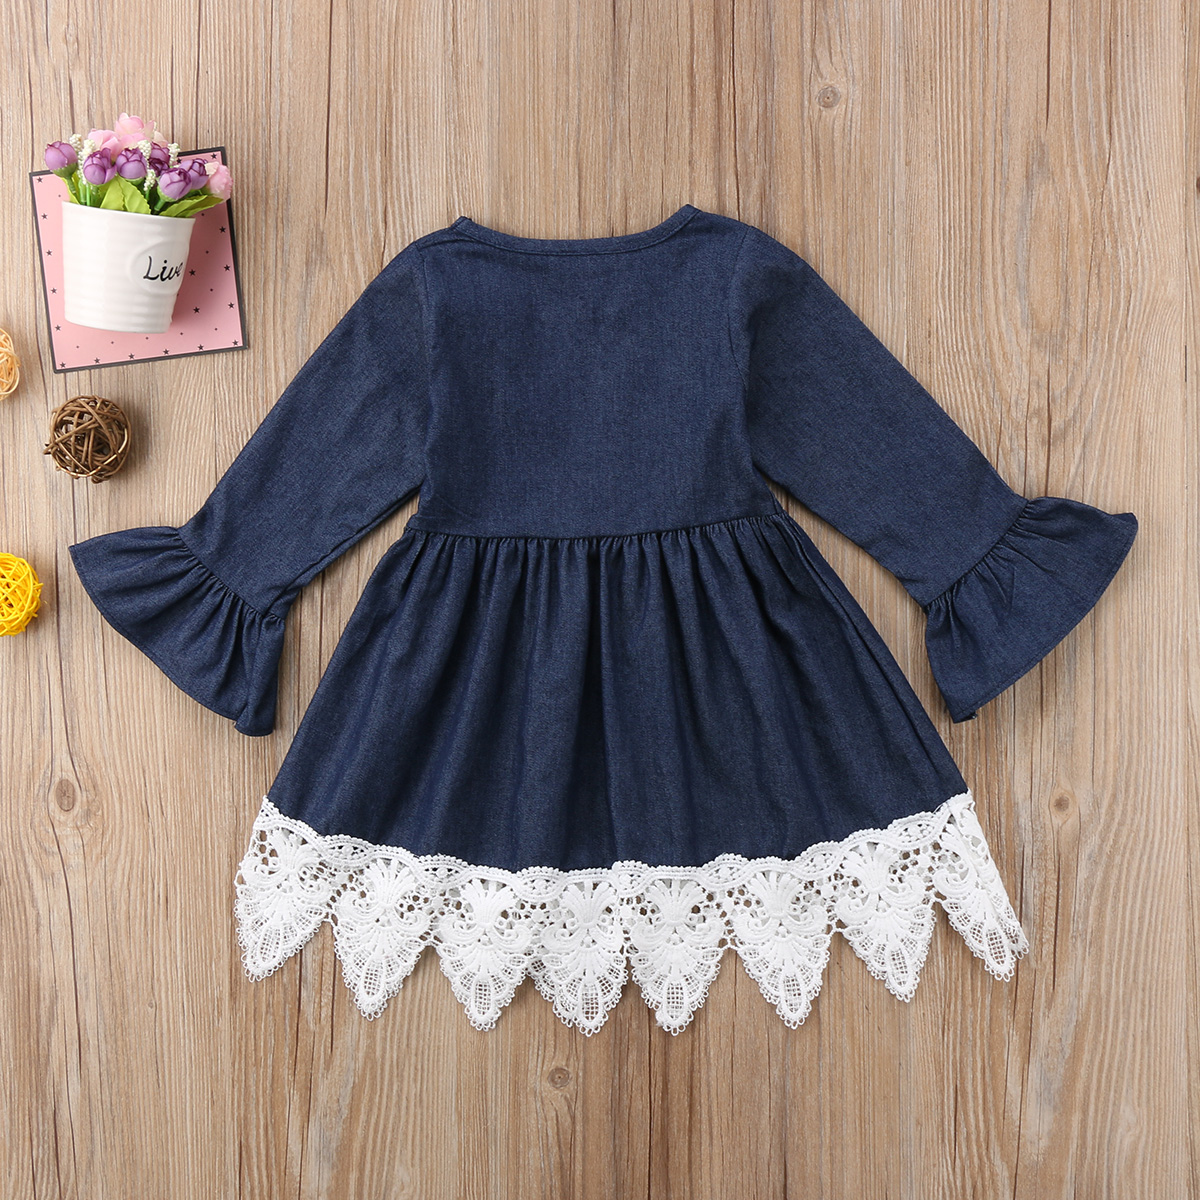 a3fe28b482 Cute Kids Newborn Toddler Baby Girls Jeans Denim Ruffles Lace Tutu Dress  Vestidos Clothes Wedding Princess Pageant Party Dresses